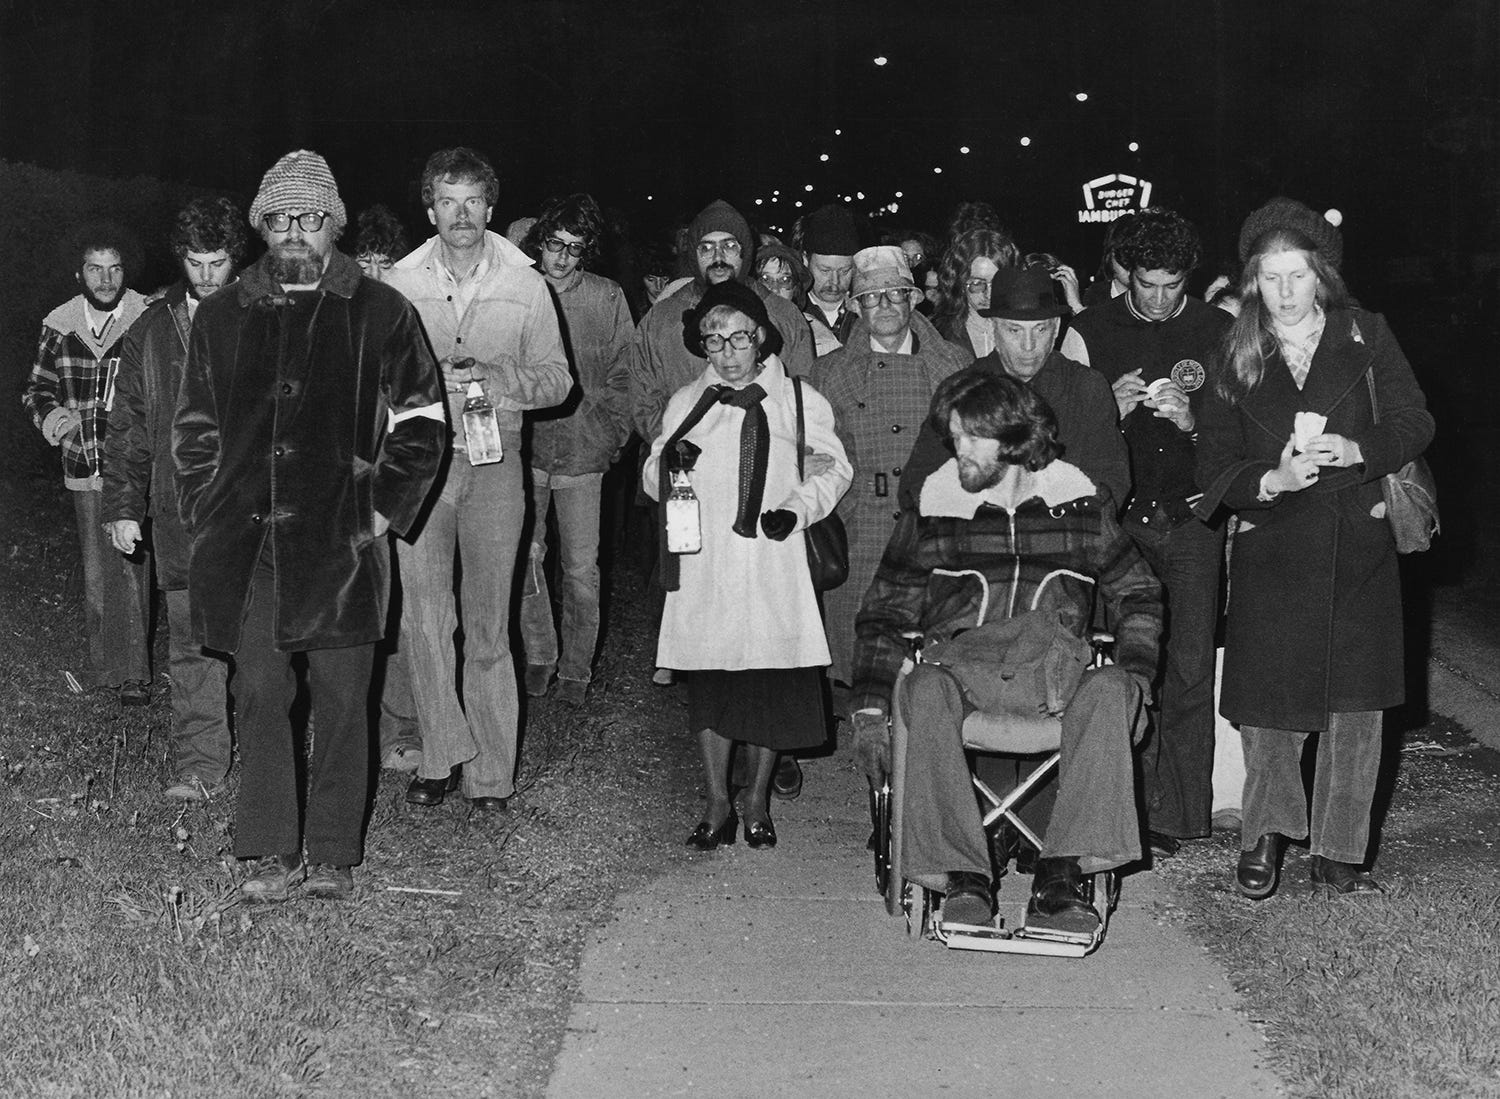 Professor Jerry Lewis (left, with beard), Elaine Holstein, mother of slain student Jeffrey Miller (center in white coat), and survivor Dean Kahler (in wheelchair) participate May 3, 1976, in the annual candlelight vigil march to commemorate the 1970 shootings on the Kent State campus.